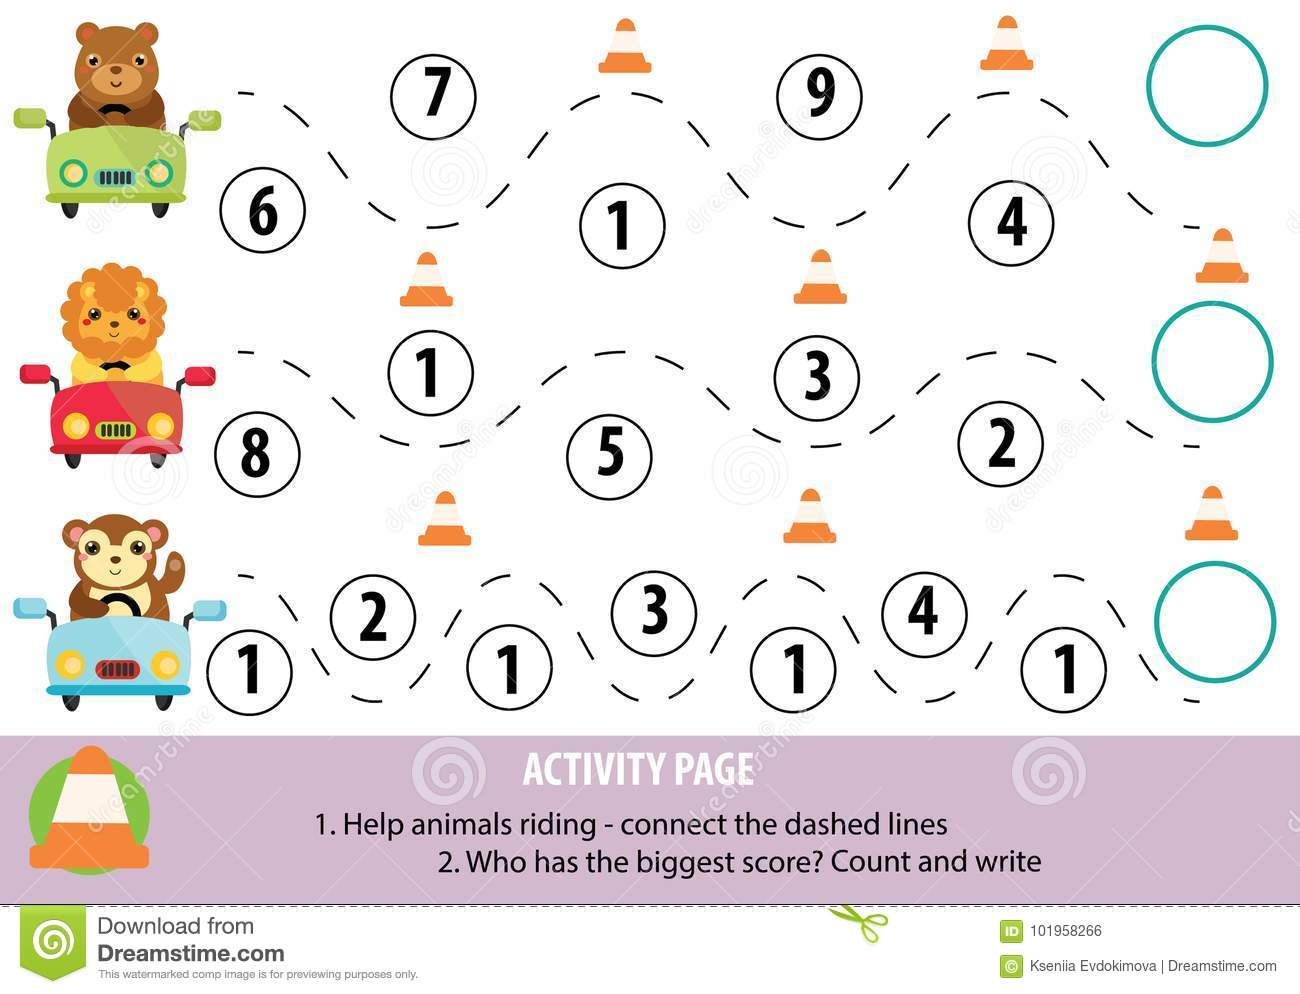 Activity Page For Children Handwriting Practice And Mathematics Educational Game Printable